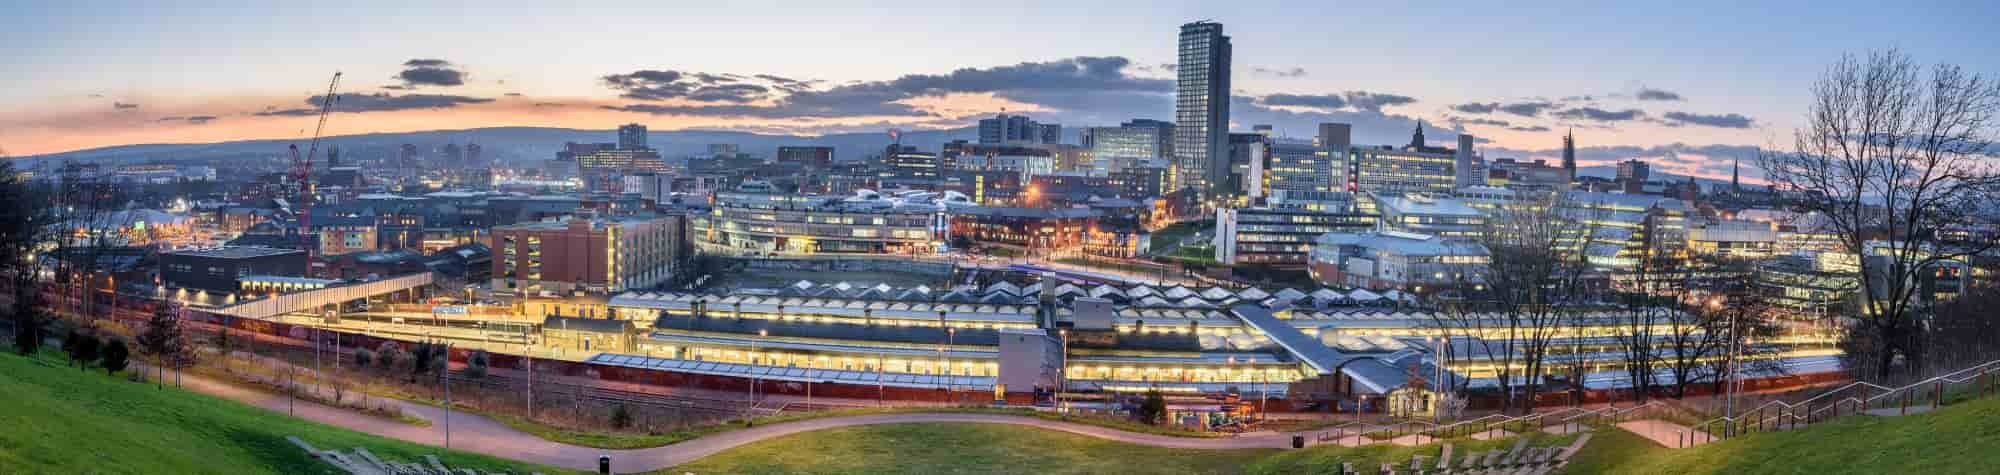 Search Consultancy Jobs in Sheffield Location Header Image Feature Sheffield Skyline.